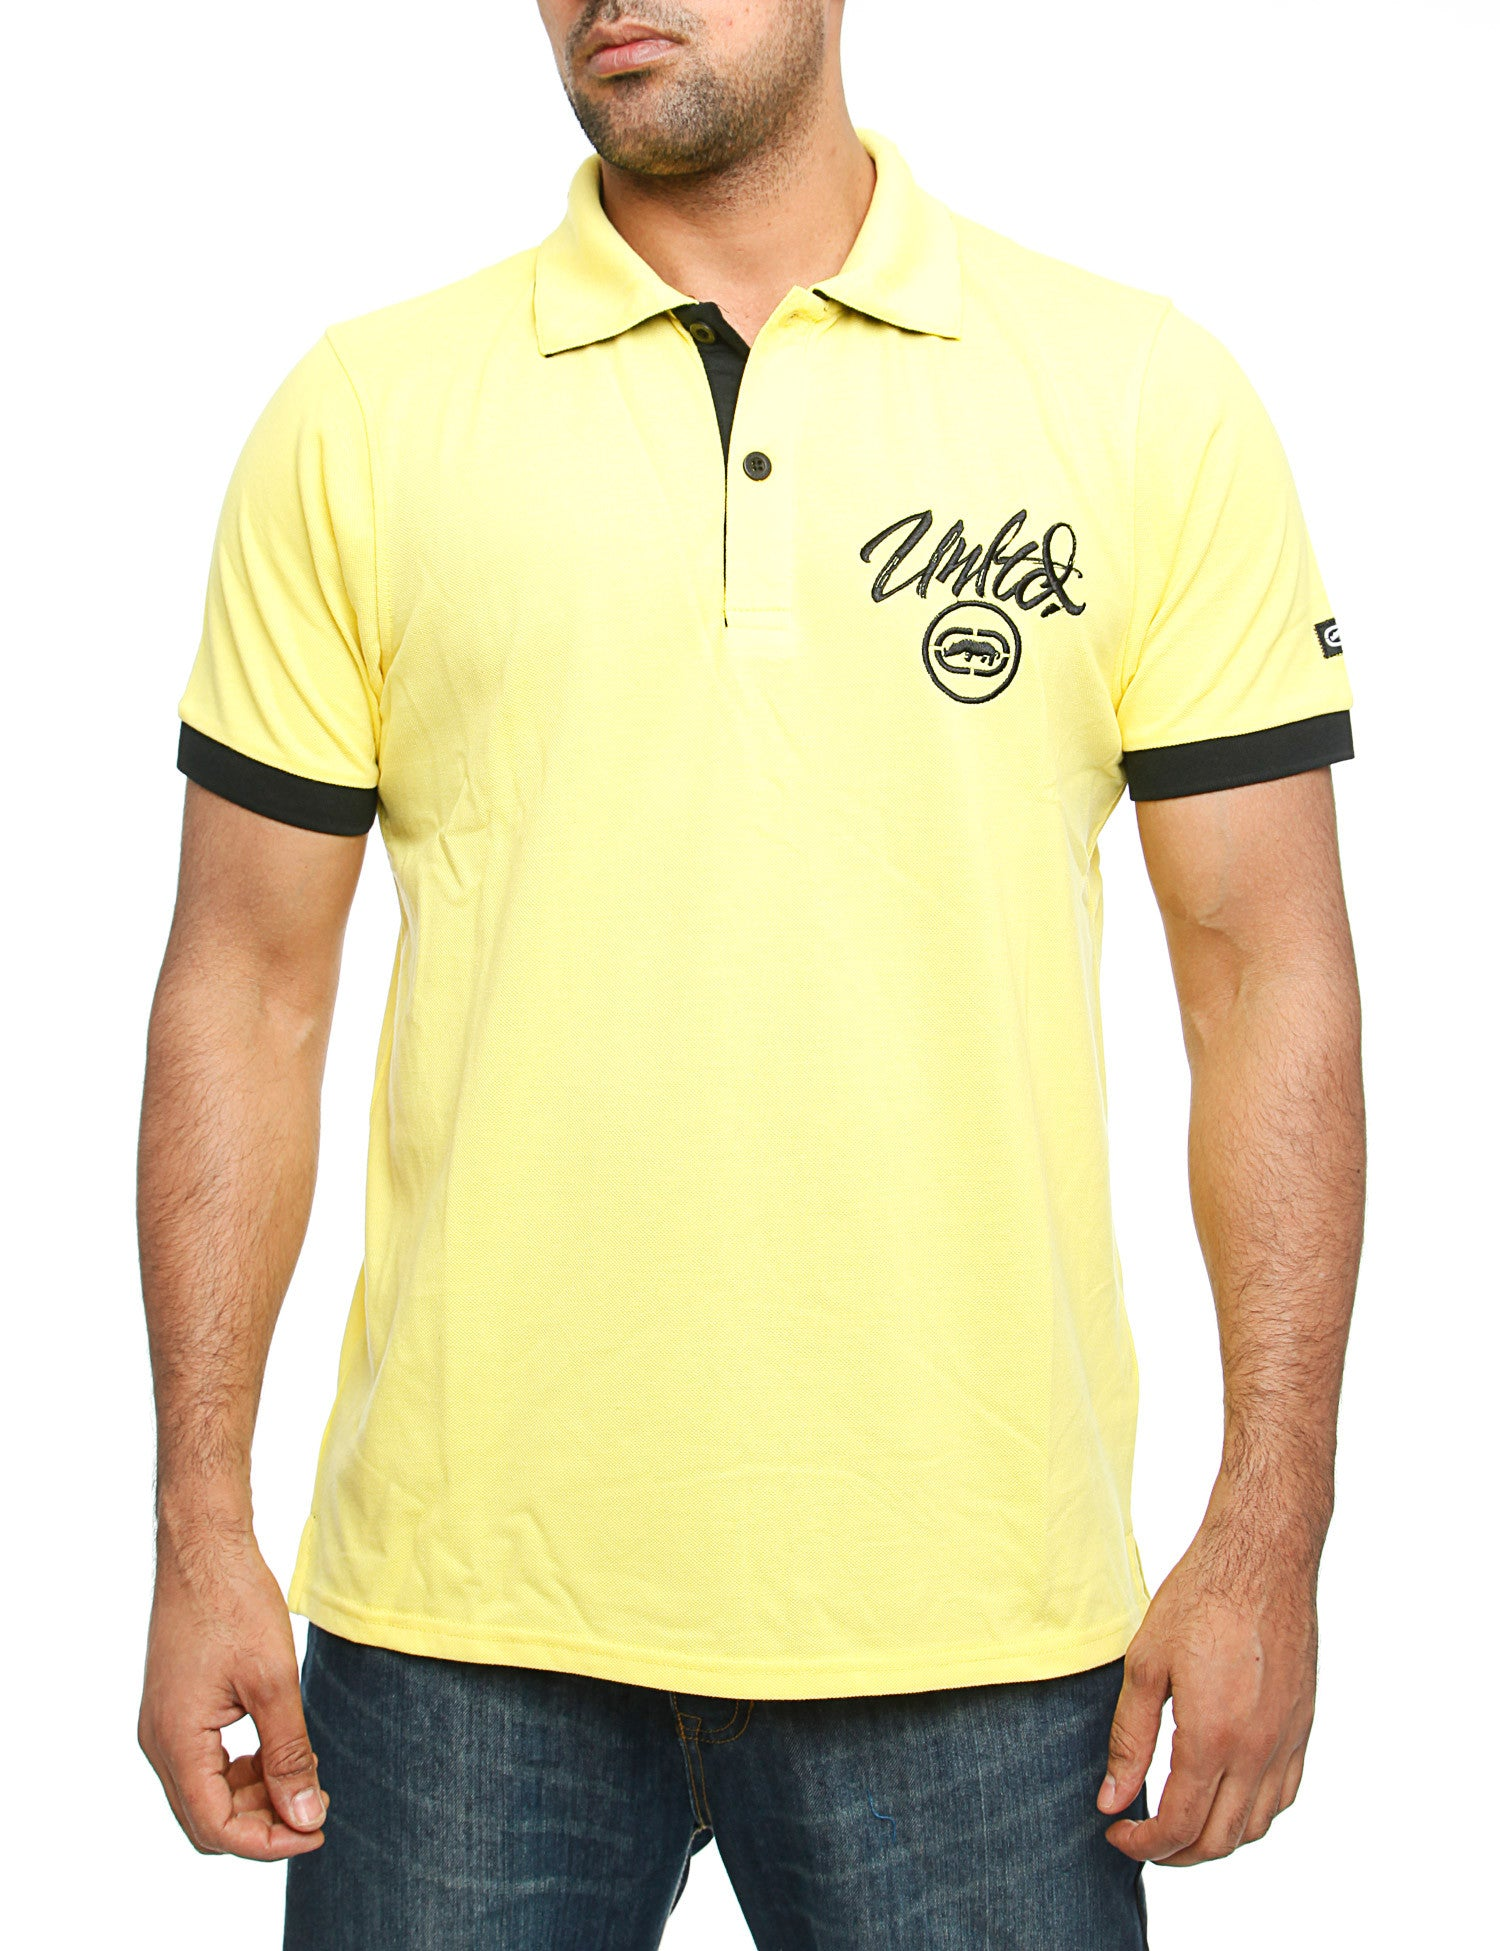 Image of Ecko Comet Polo Shirt Yellow